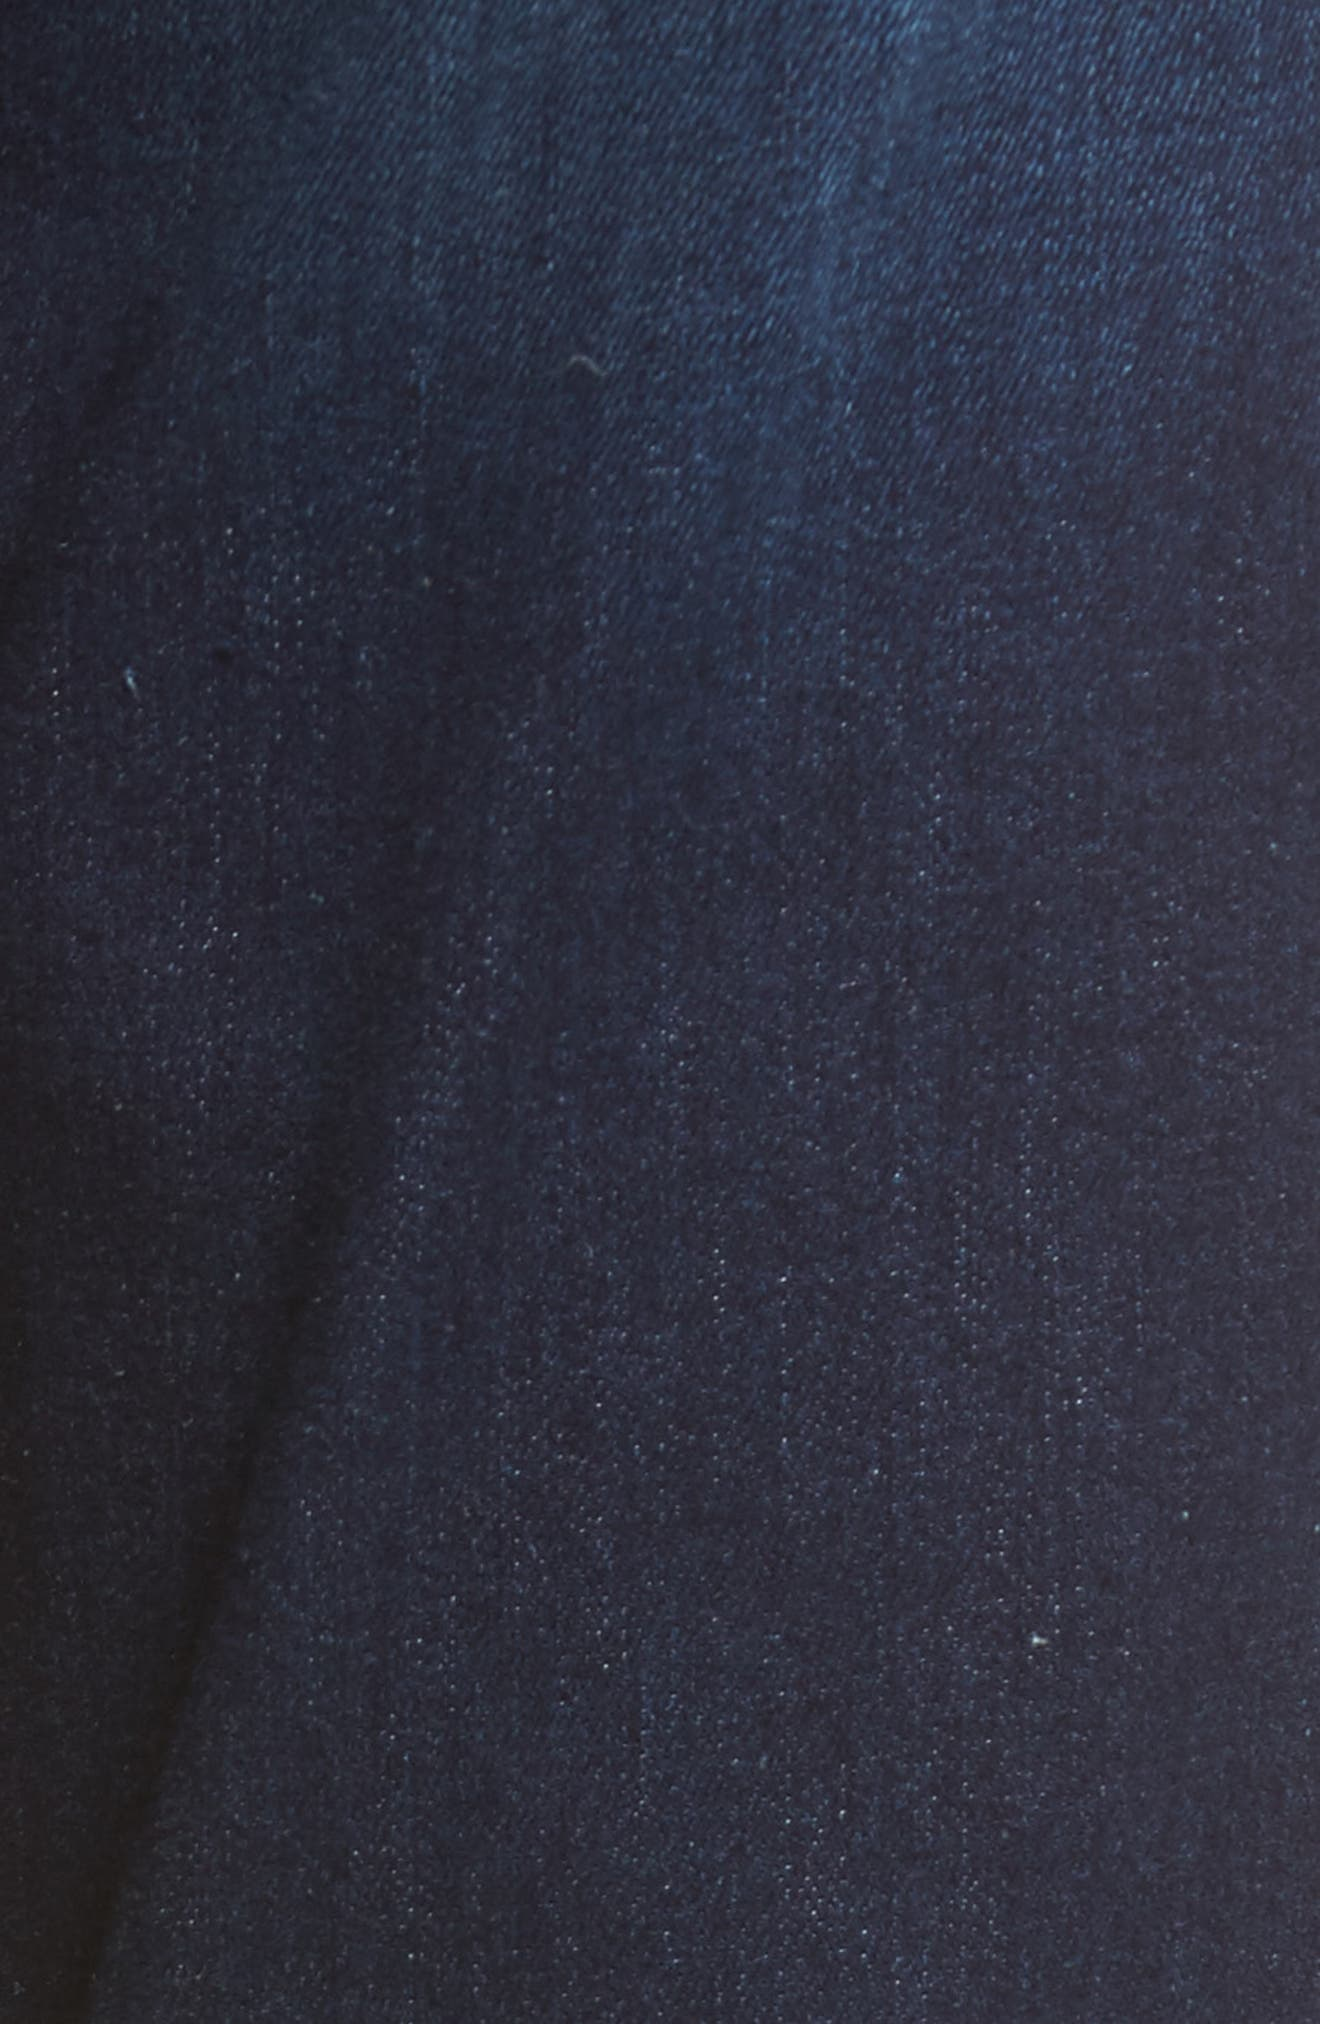 7 FOR ALL MANKIND<SUP>®</SUP>, b(air) High Waist Skinny Jeans, Alternate thumbnail 6, color, MORENO